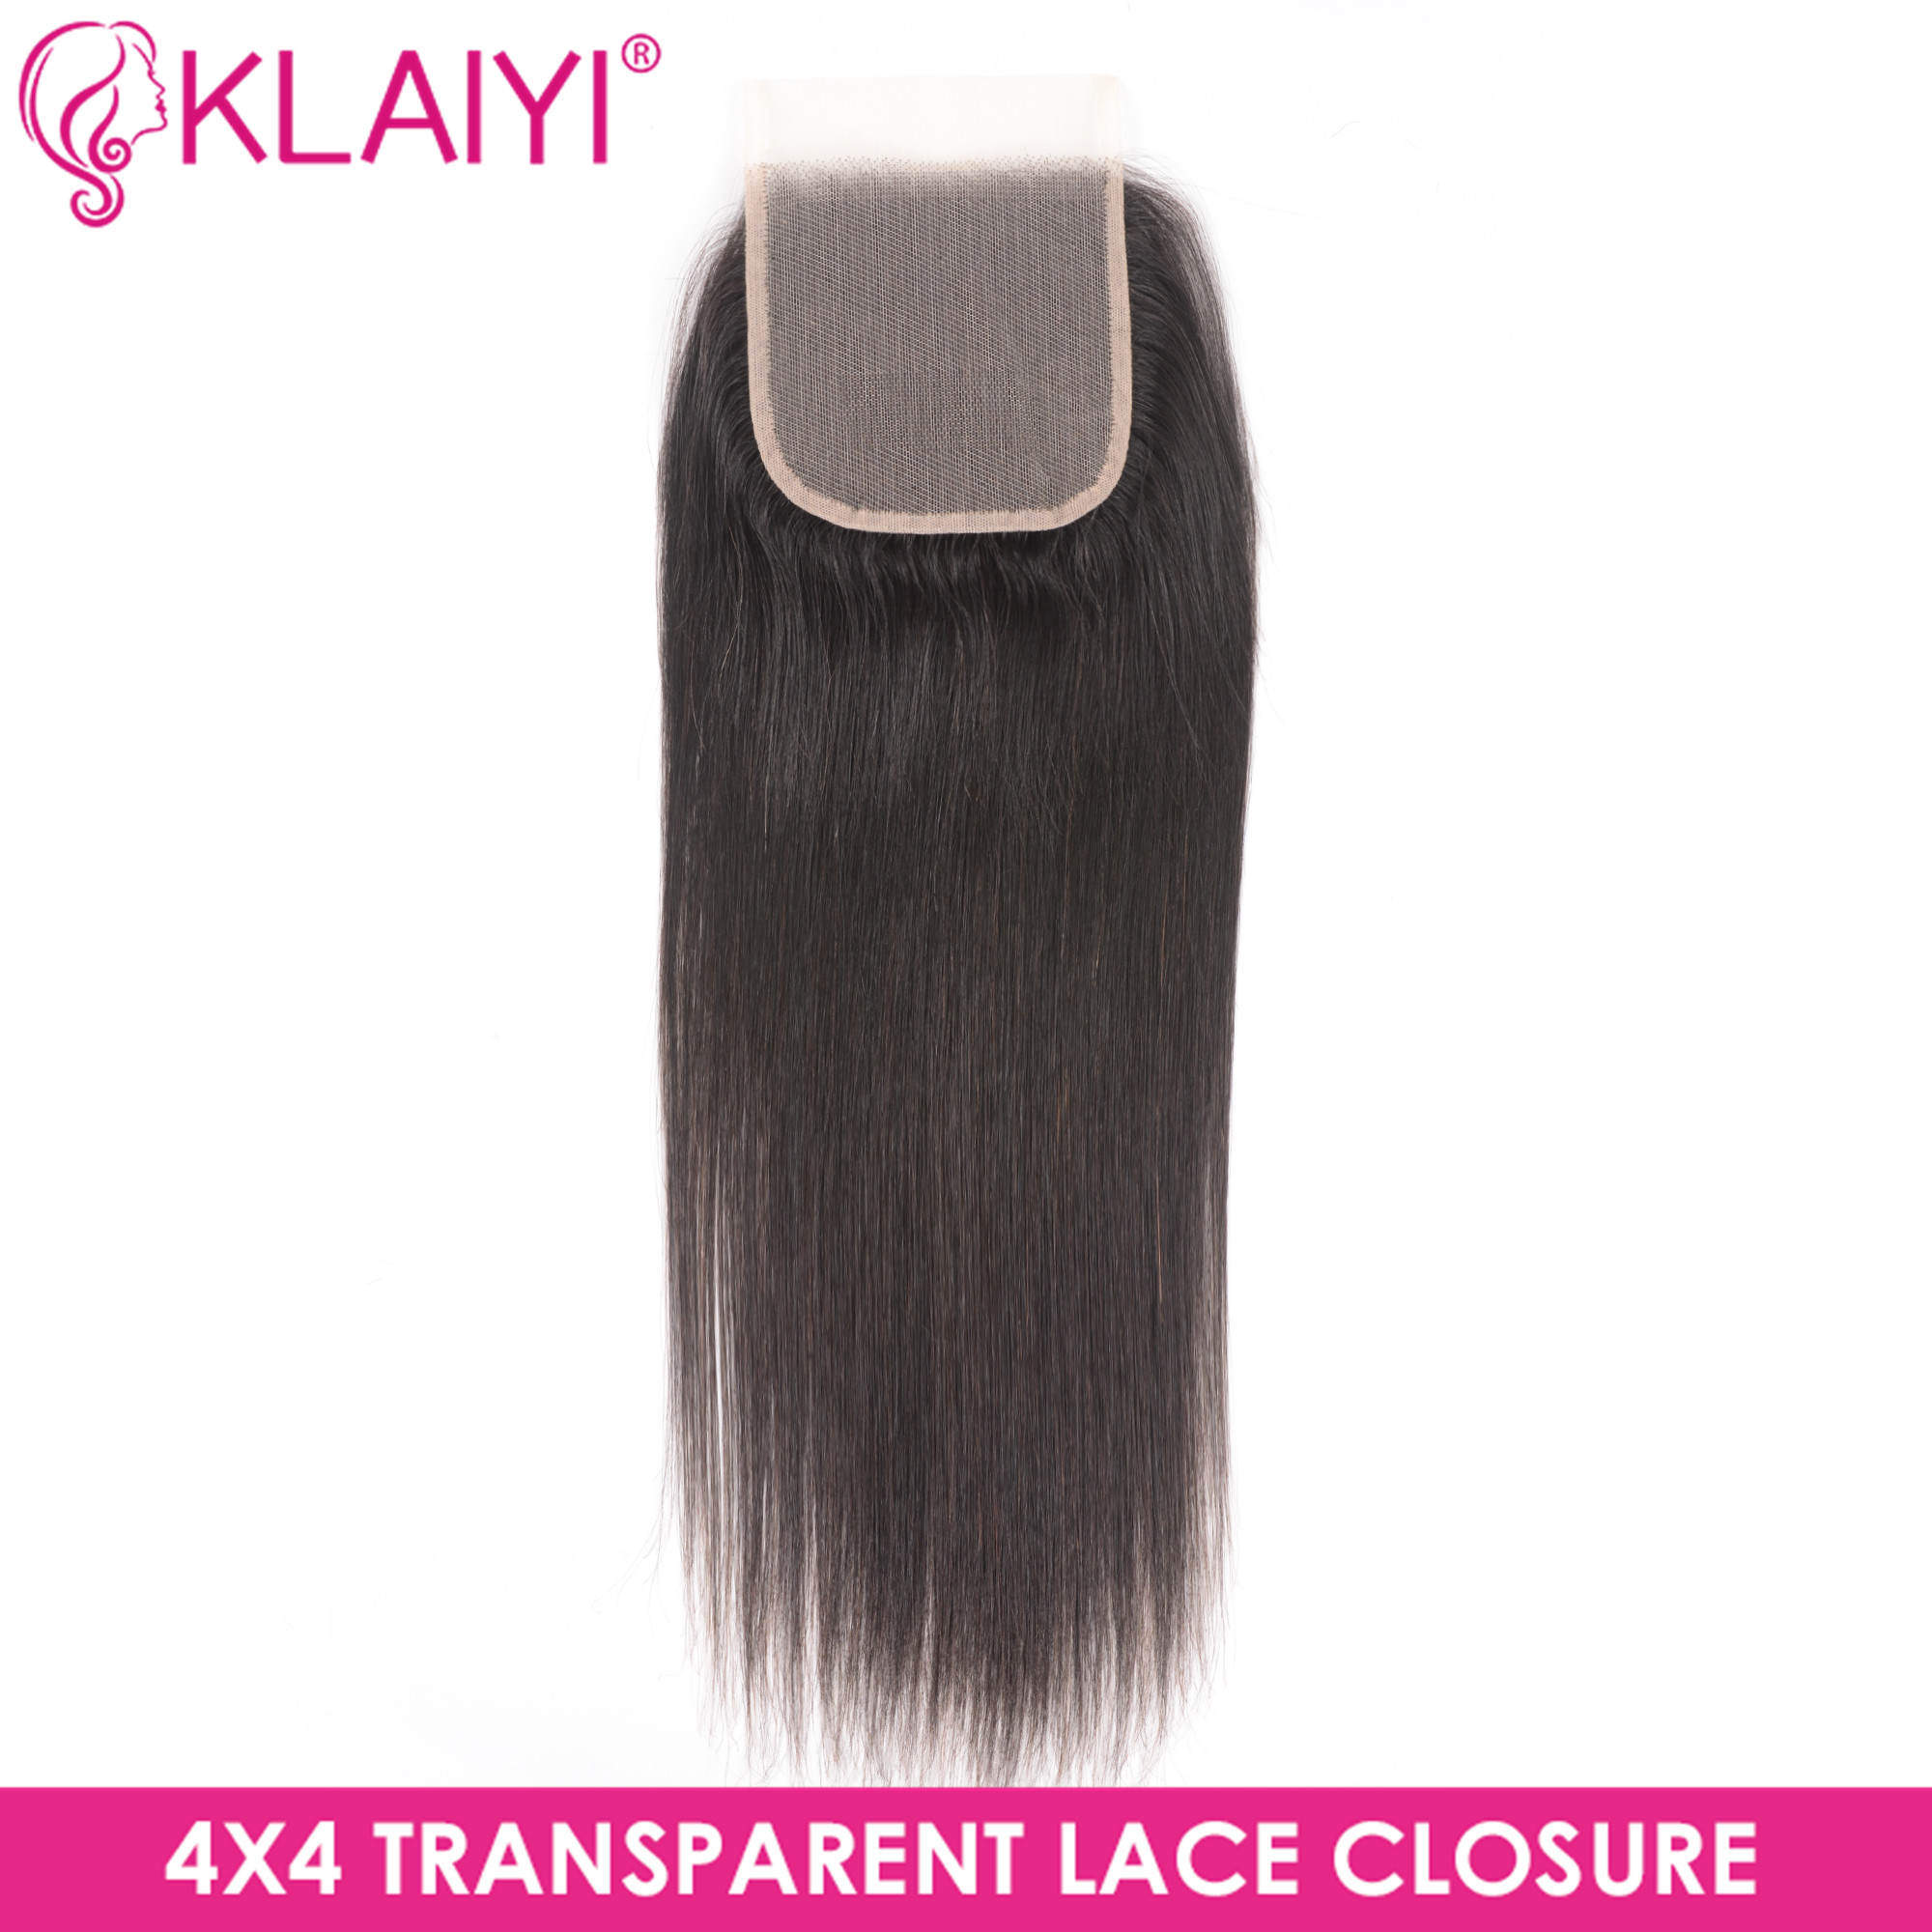 Klaiyi Hair Transparent Lace Closure Brazilian Straight Hair Remy Hair Free Part 4*4 Soft Swiss Lace Natural Color 10-20 Inch